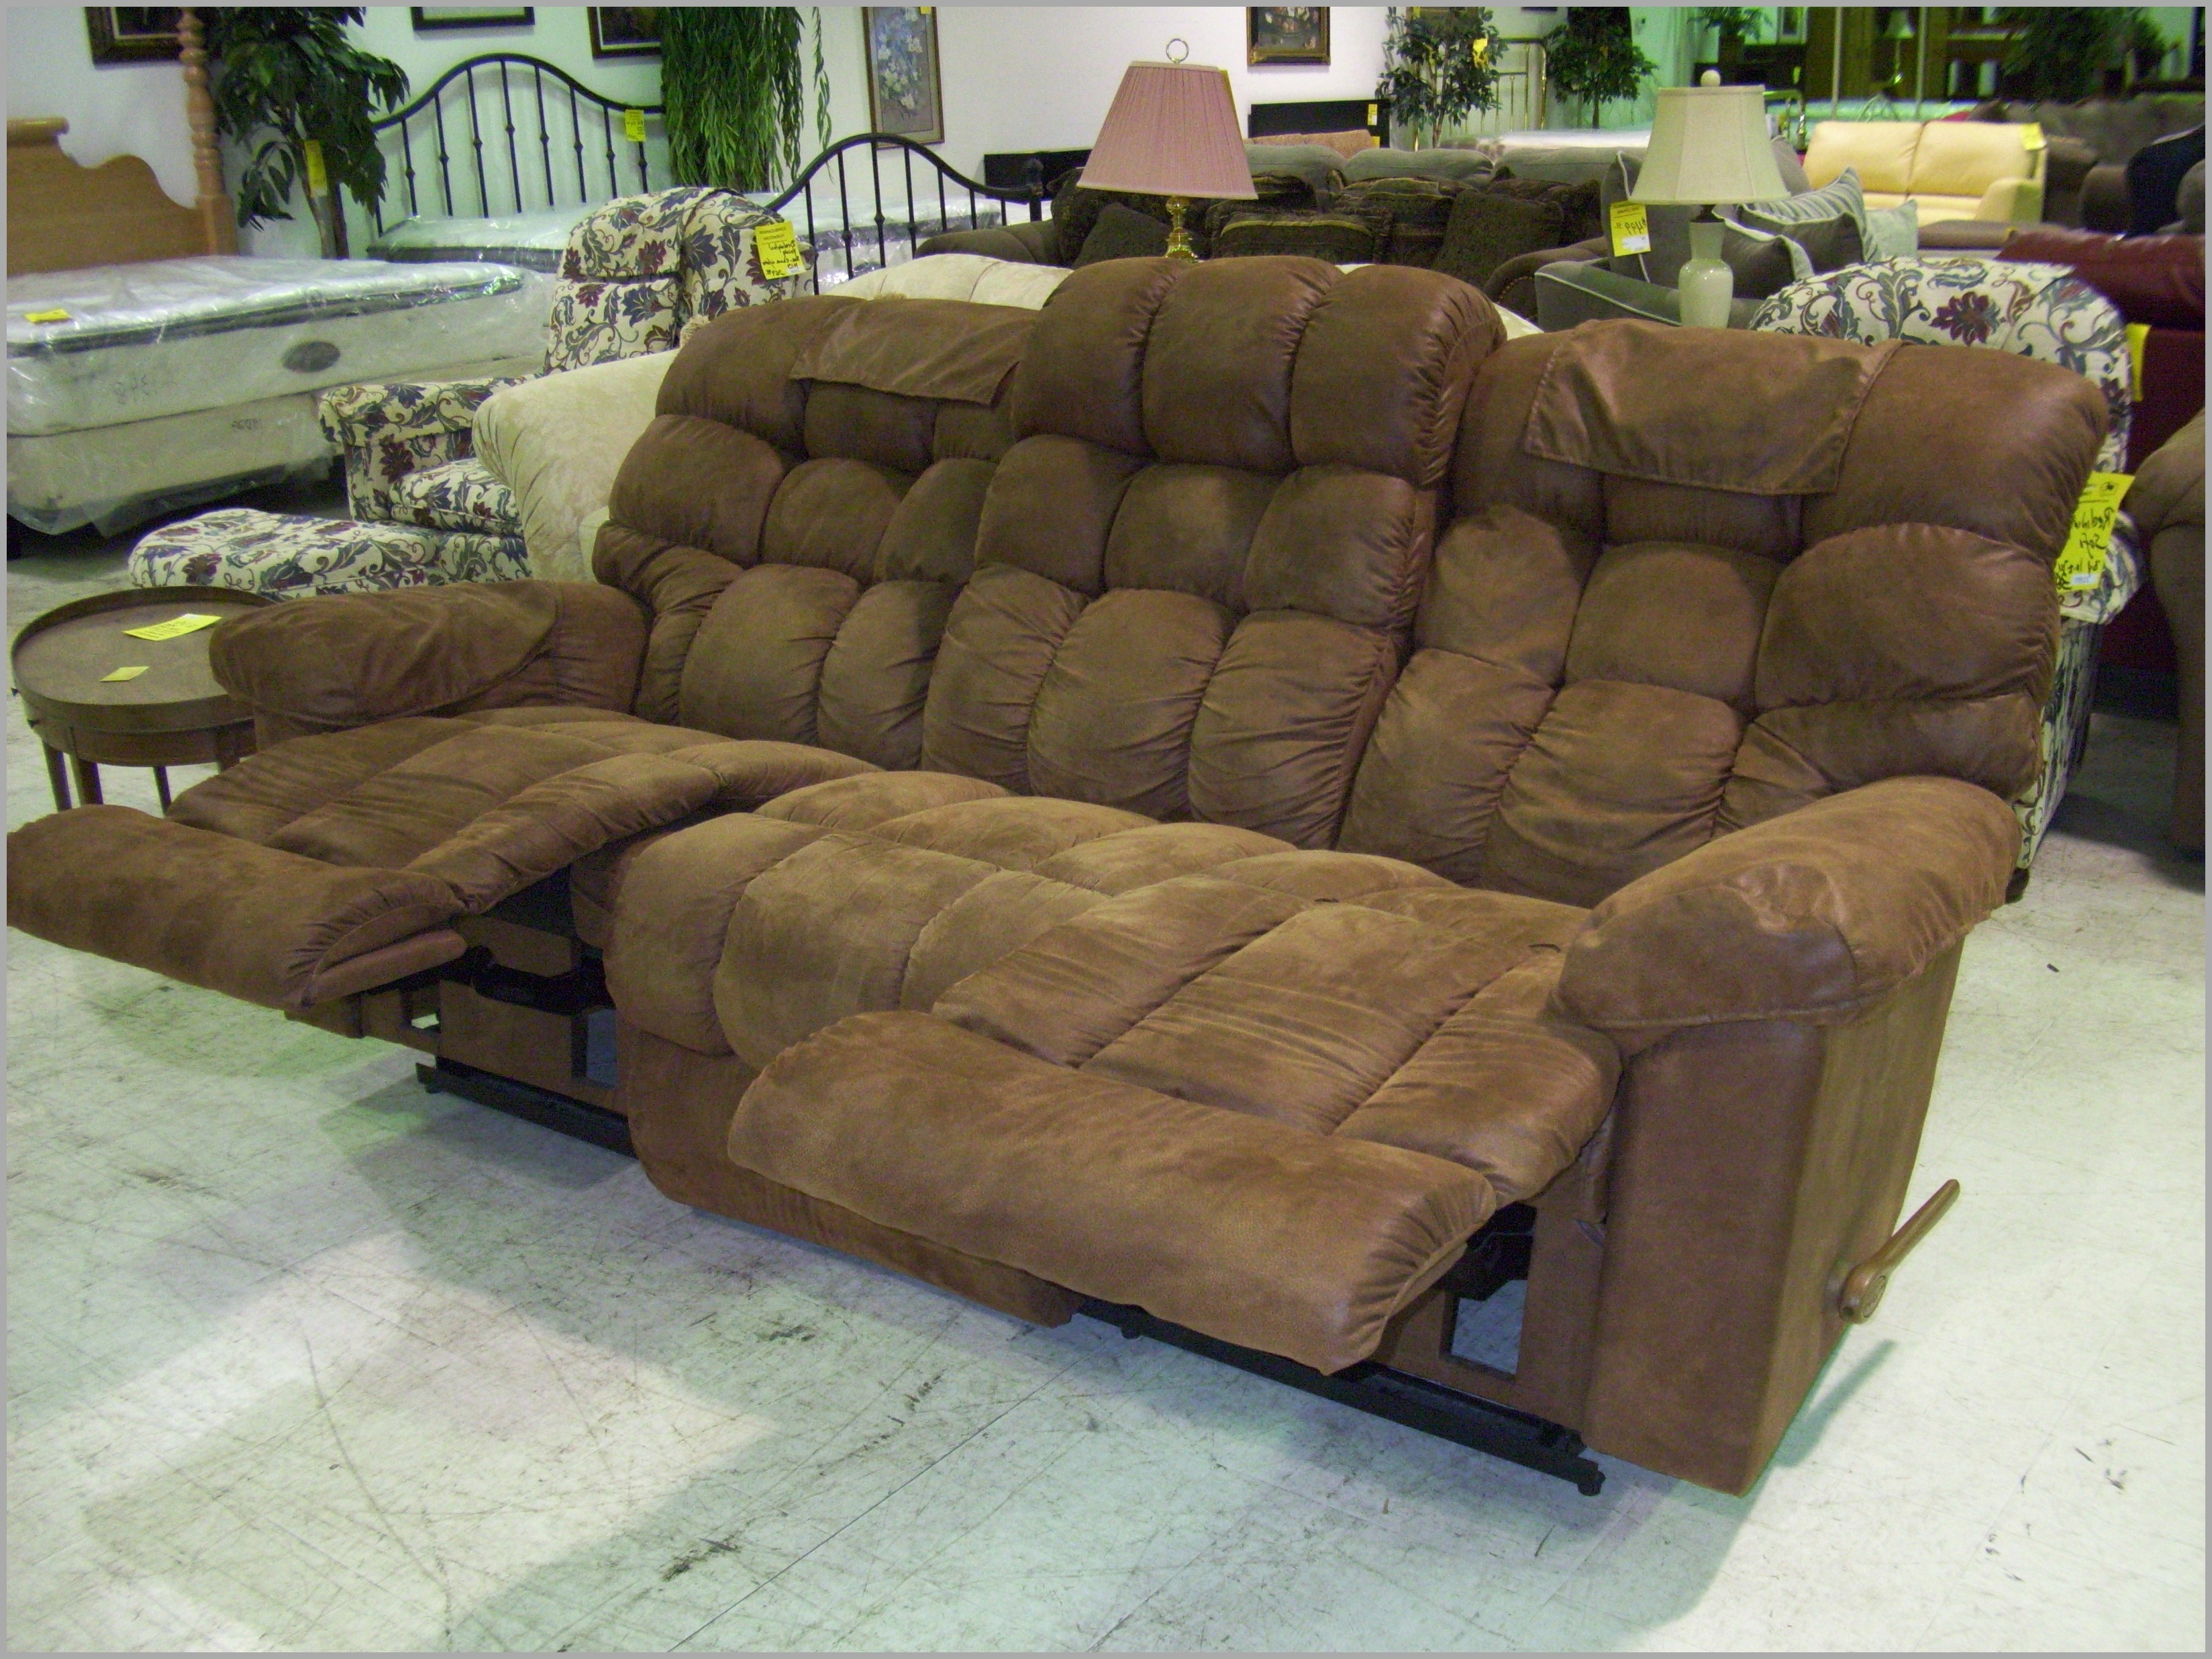 Sofas : Recliners Near Me Sears Power Lift Chairs Sears Sectionals With 2018 Sectional Sofas At Sears (View 14 of 15)